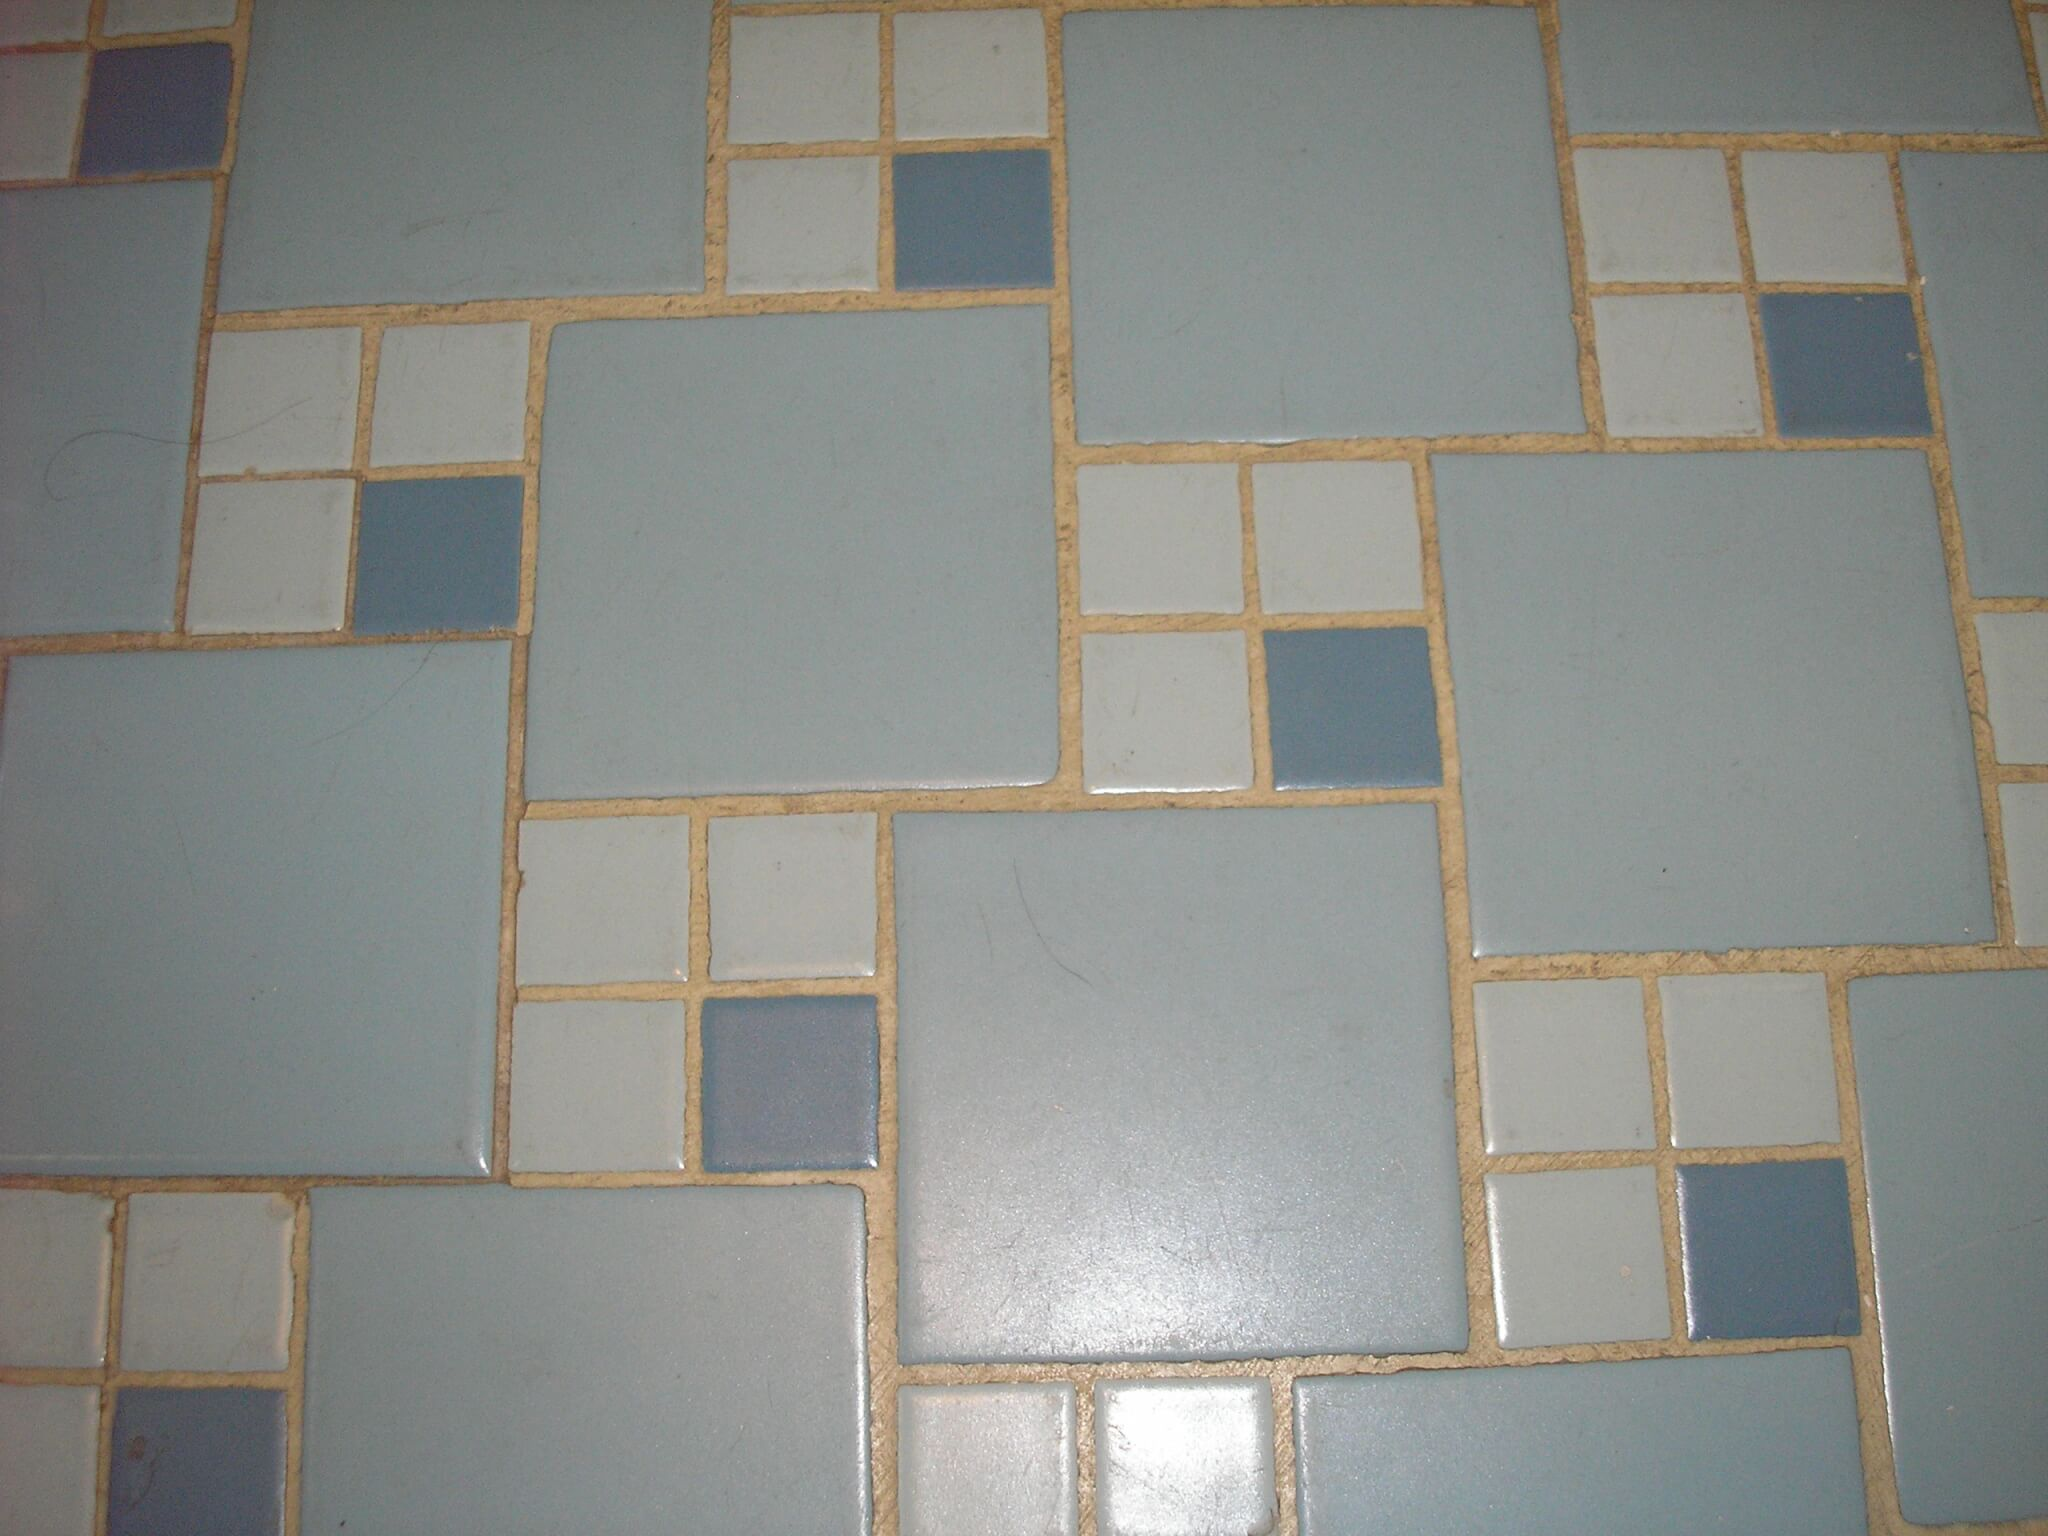 Blue Bathroom Floor Tiles Texture Blue Bathroom Floor Tiles